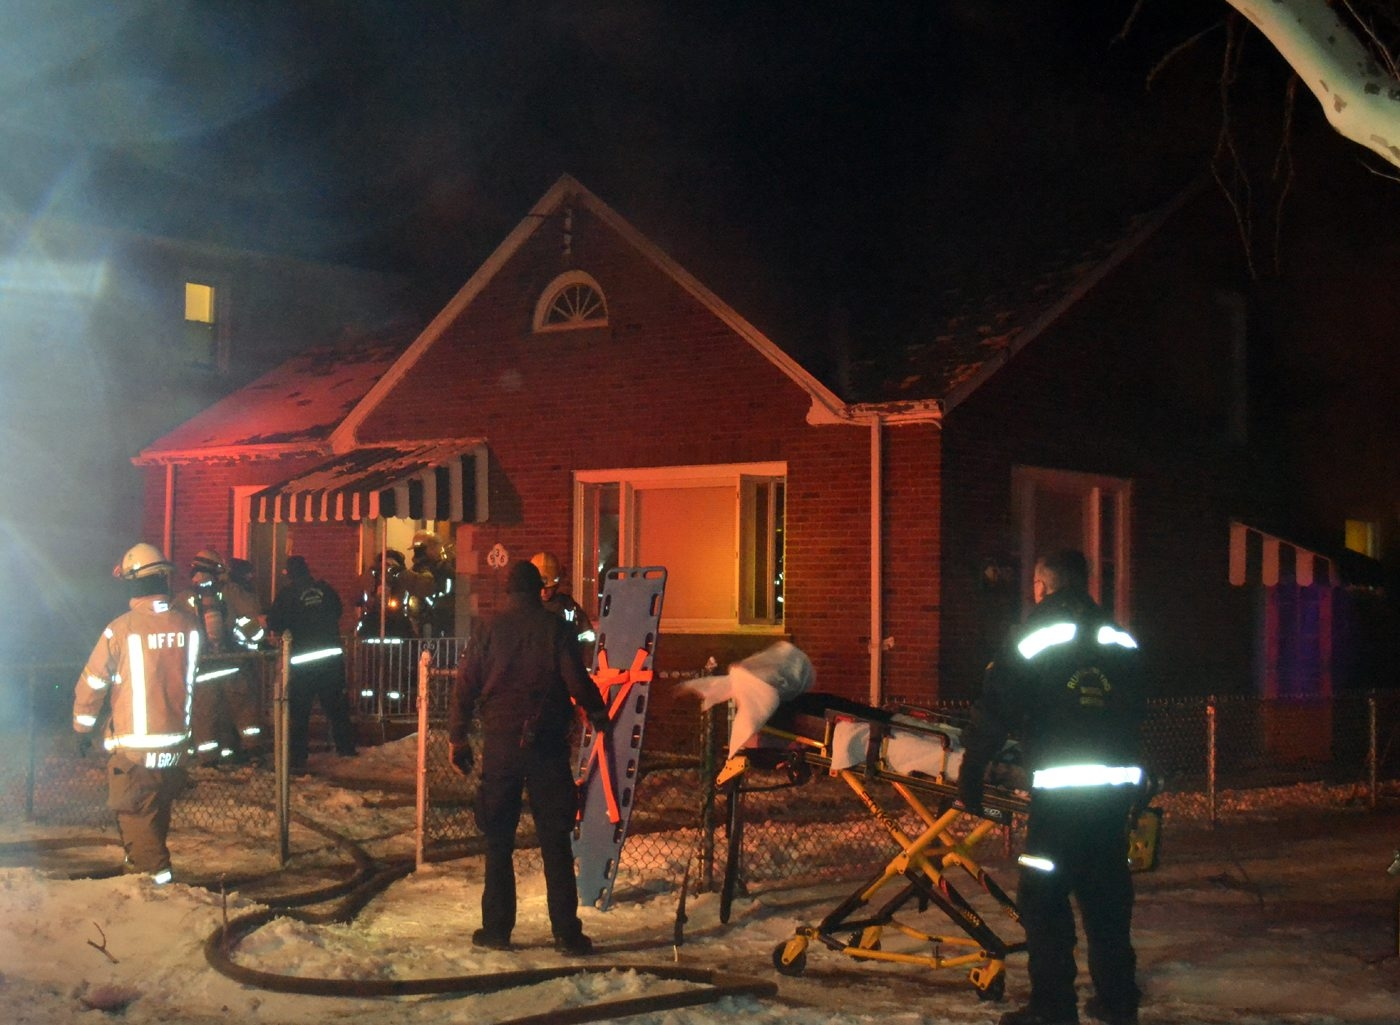 Firefighters at the scene of the fatal blaze on 26th Street in Niagara Falls.